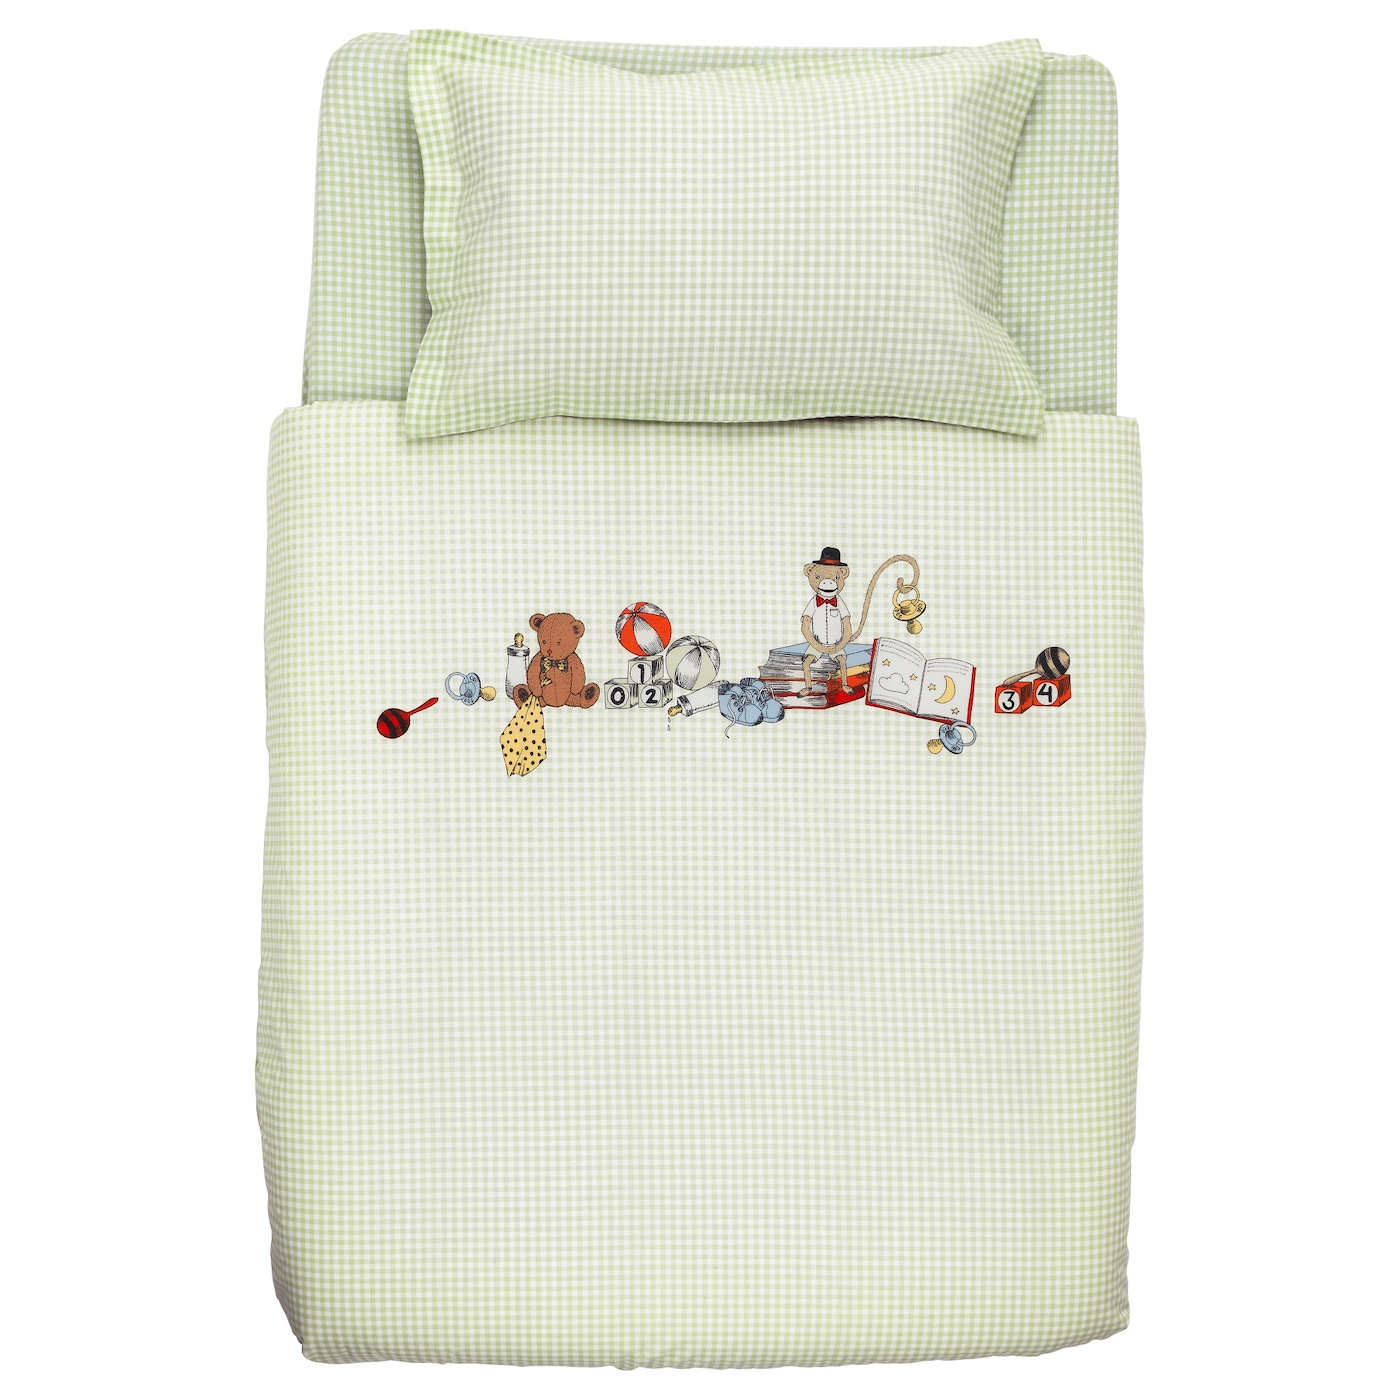 IKEA NANIG 3-piece bedlinen set for cot